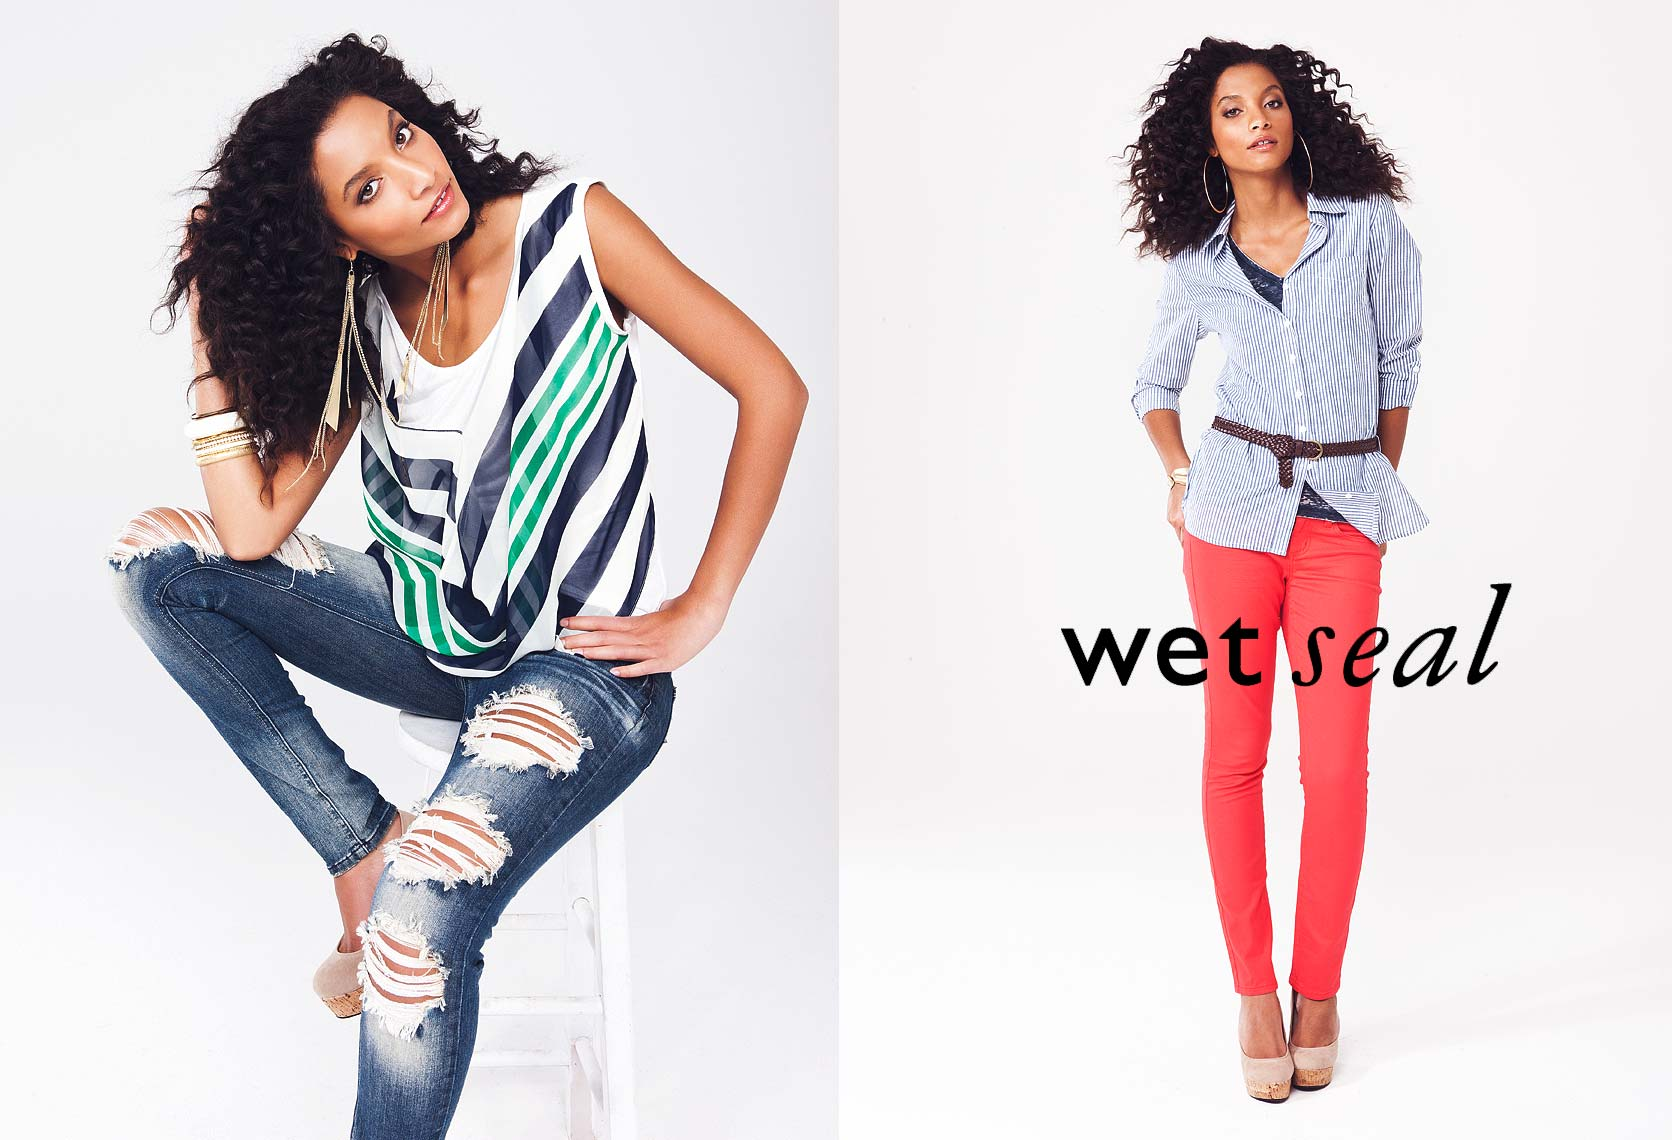 CHRIS-HUNT-FASHION-PHOTOGRAPHY-ADVERTISING-WETSEAL-0483